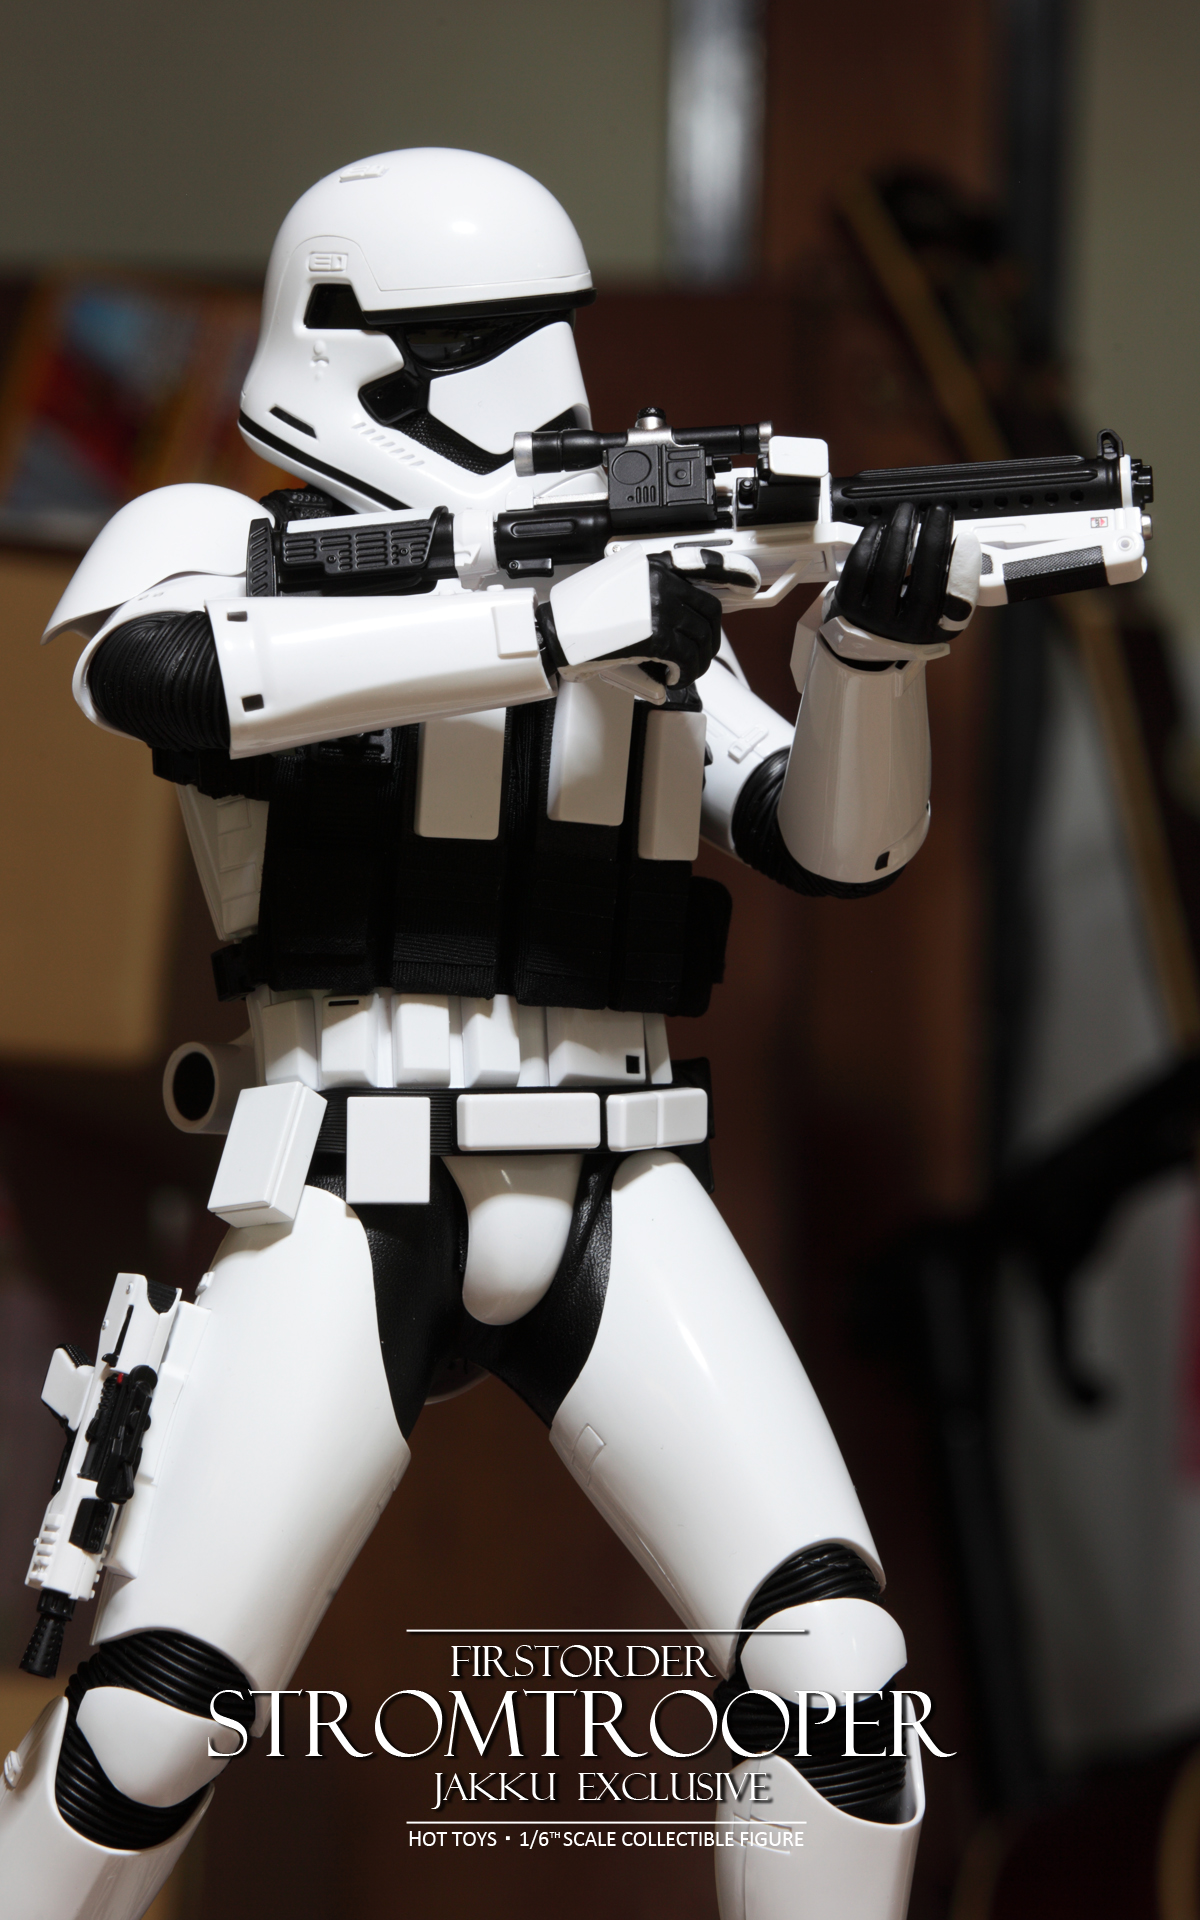 hottoys-star-wars-the-force-awakens-first-order-stormtrooper-jakku-picture10